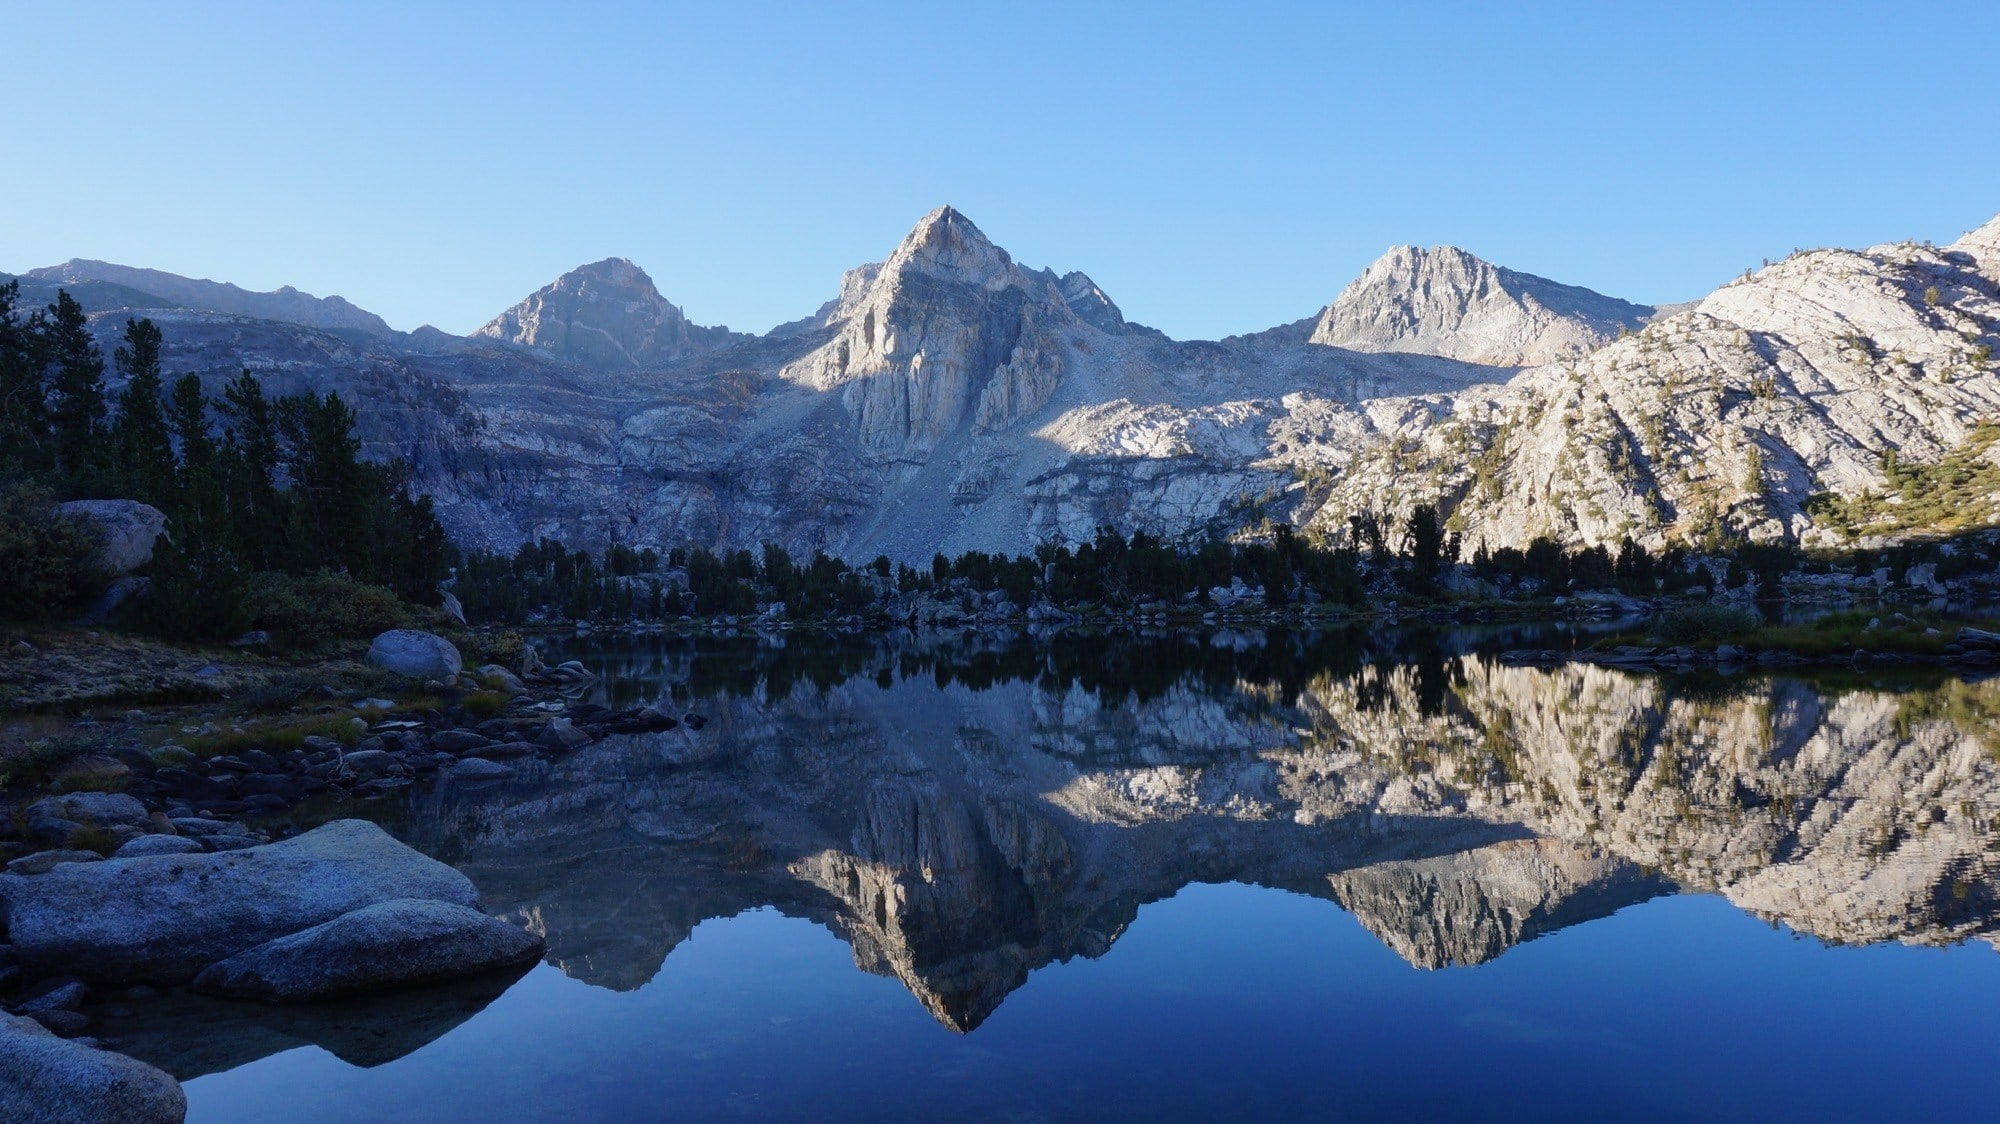 Rae Lakes // The best section hikes on the John Muir Trail that require less than a week to complete. Our detailed guide helps you plan permits, transportation and more!